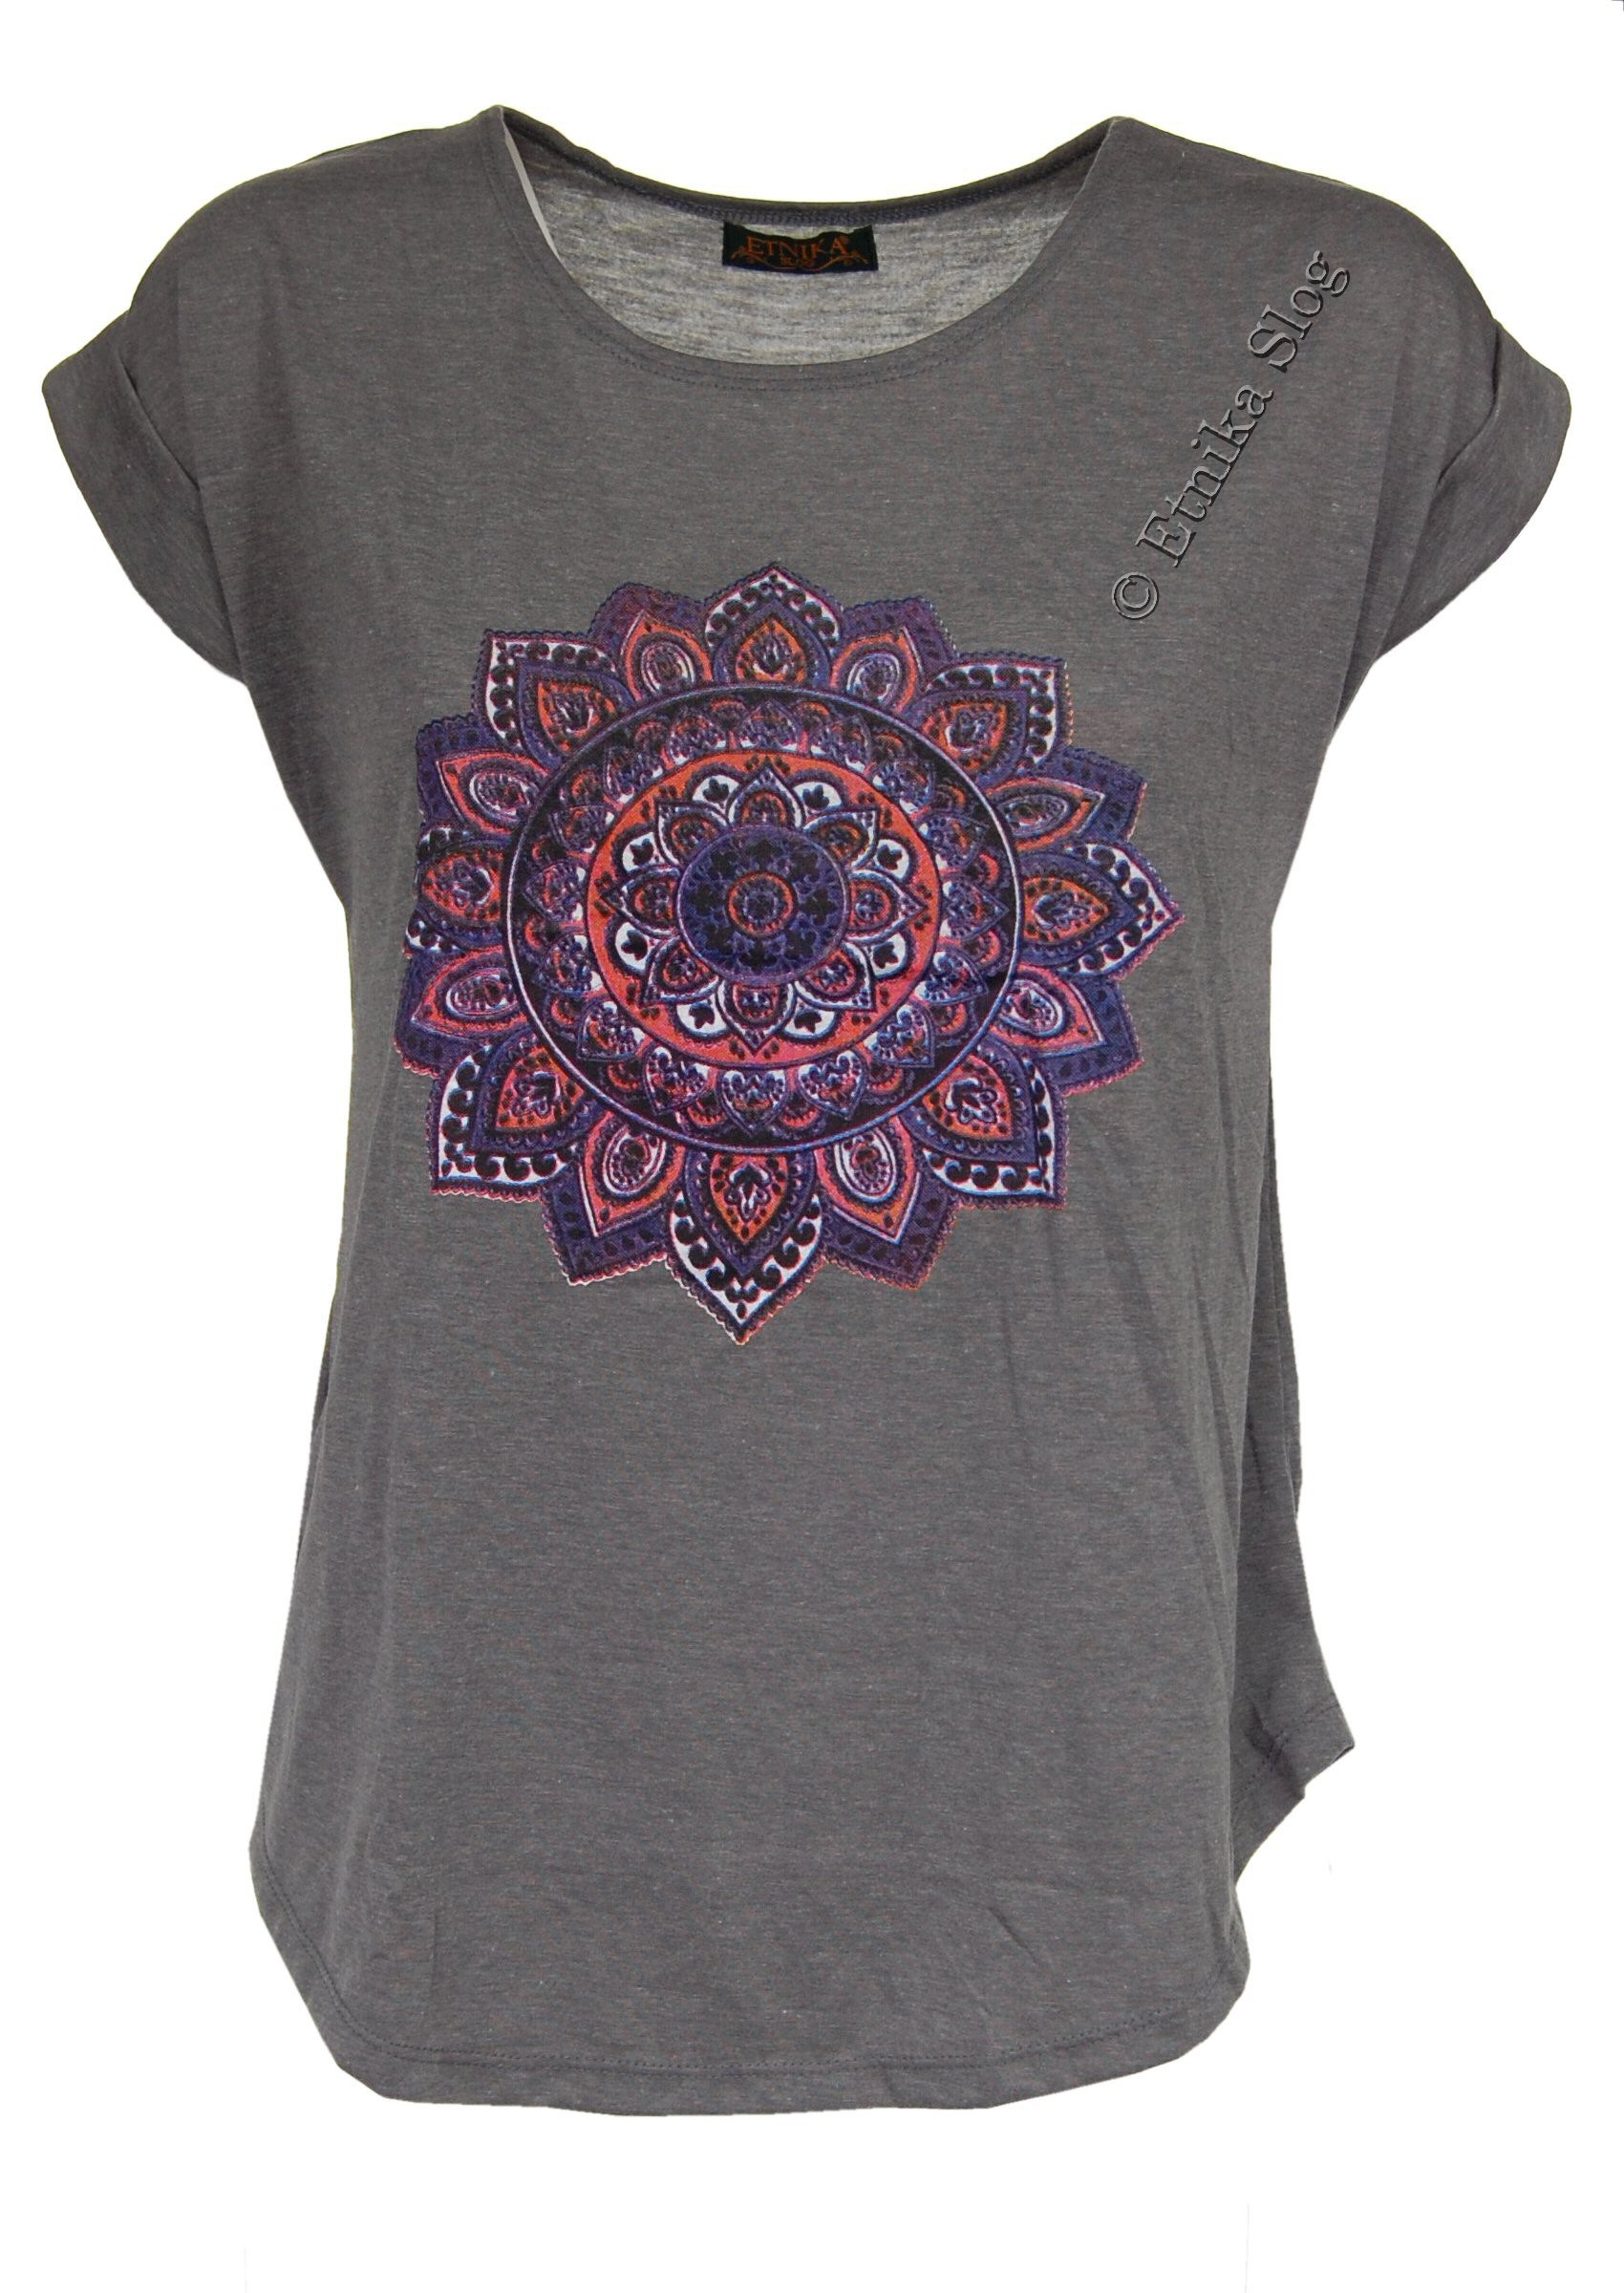 PRINTED T-SHIRTS AB-BCT08-21 - Oriente Import S.r.l.